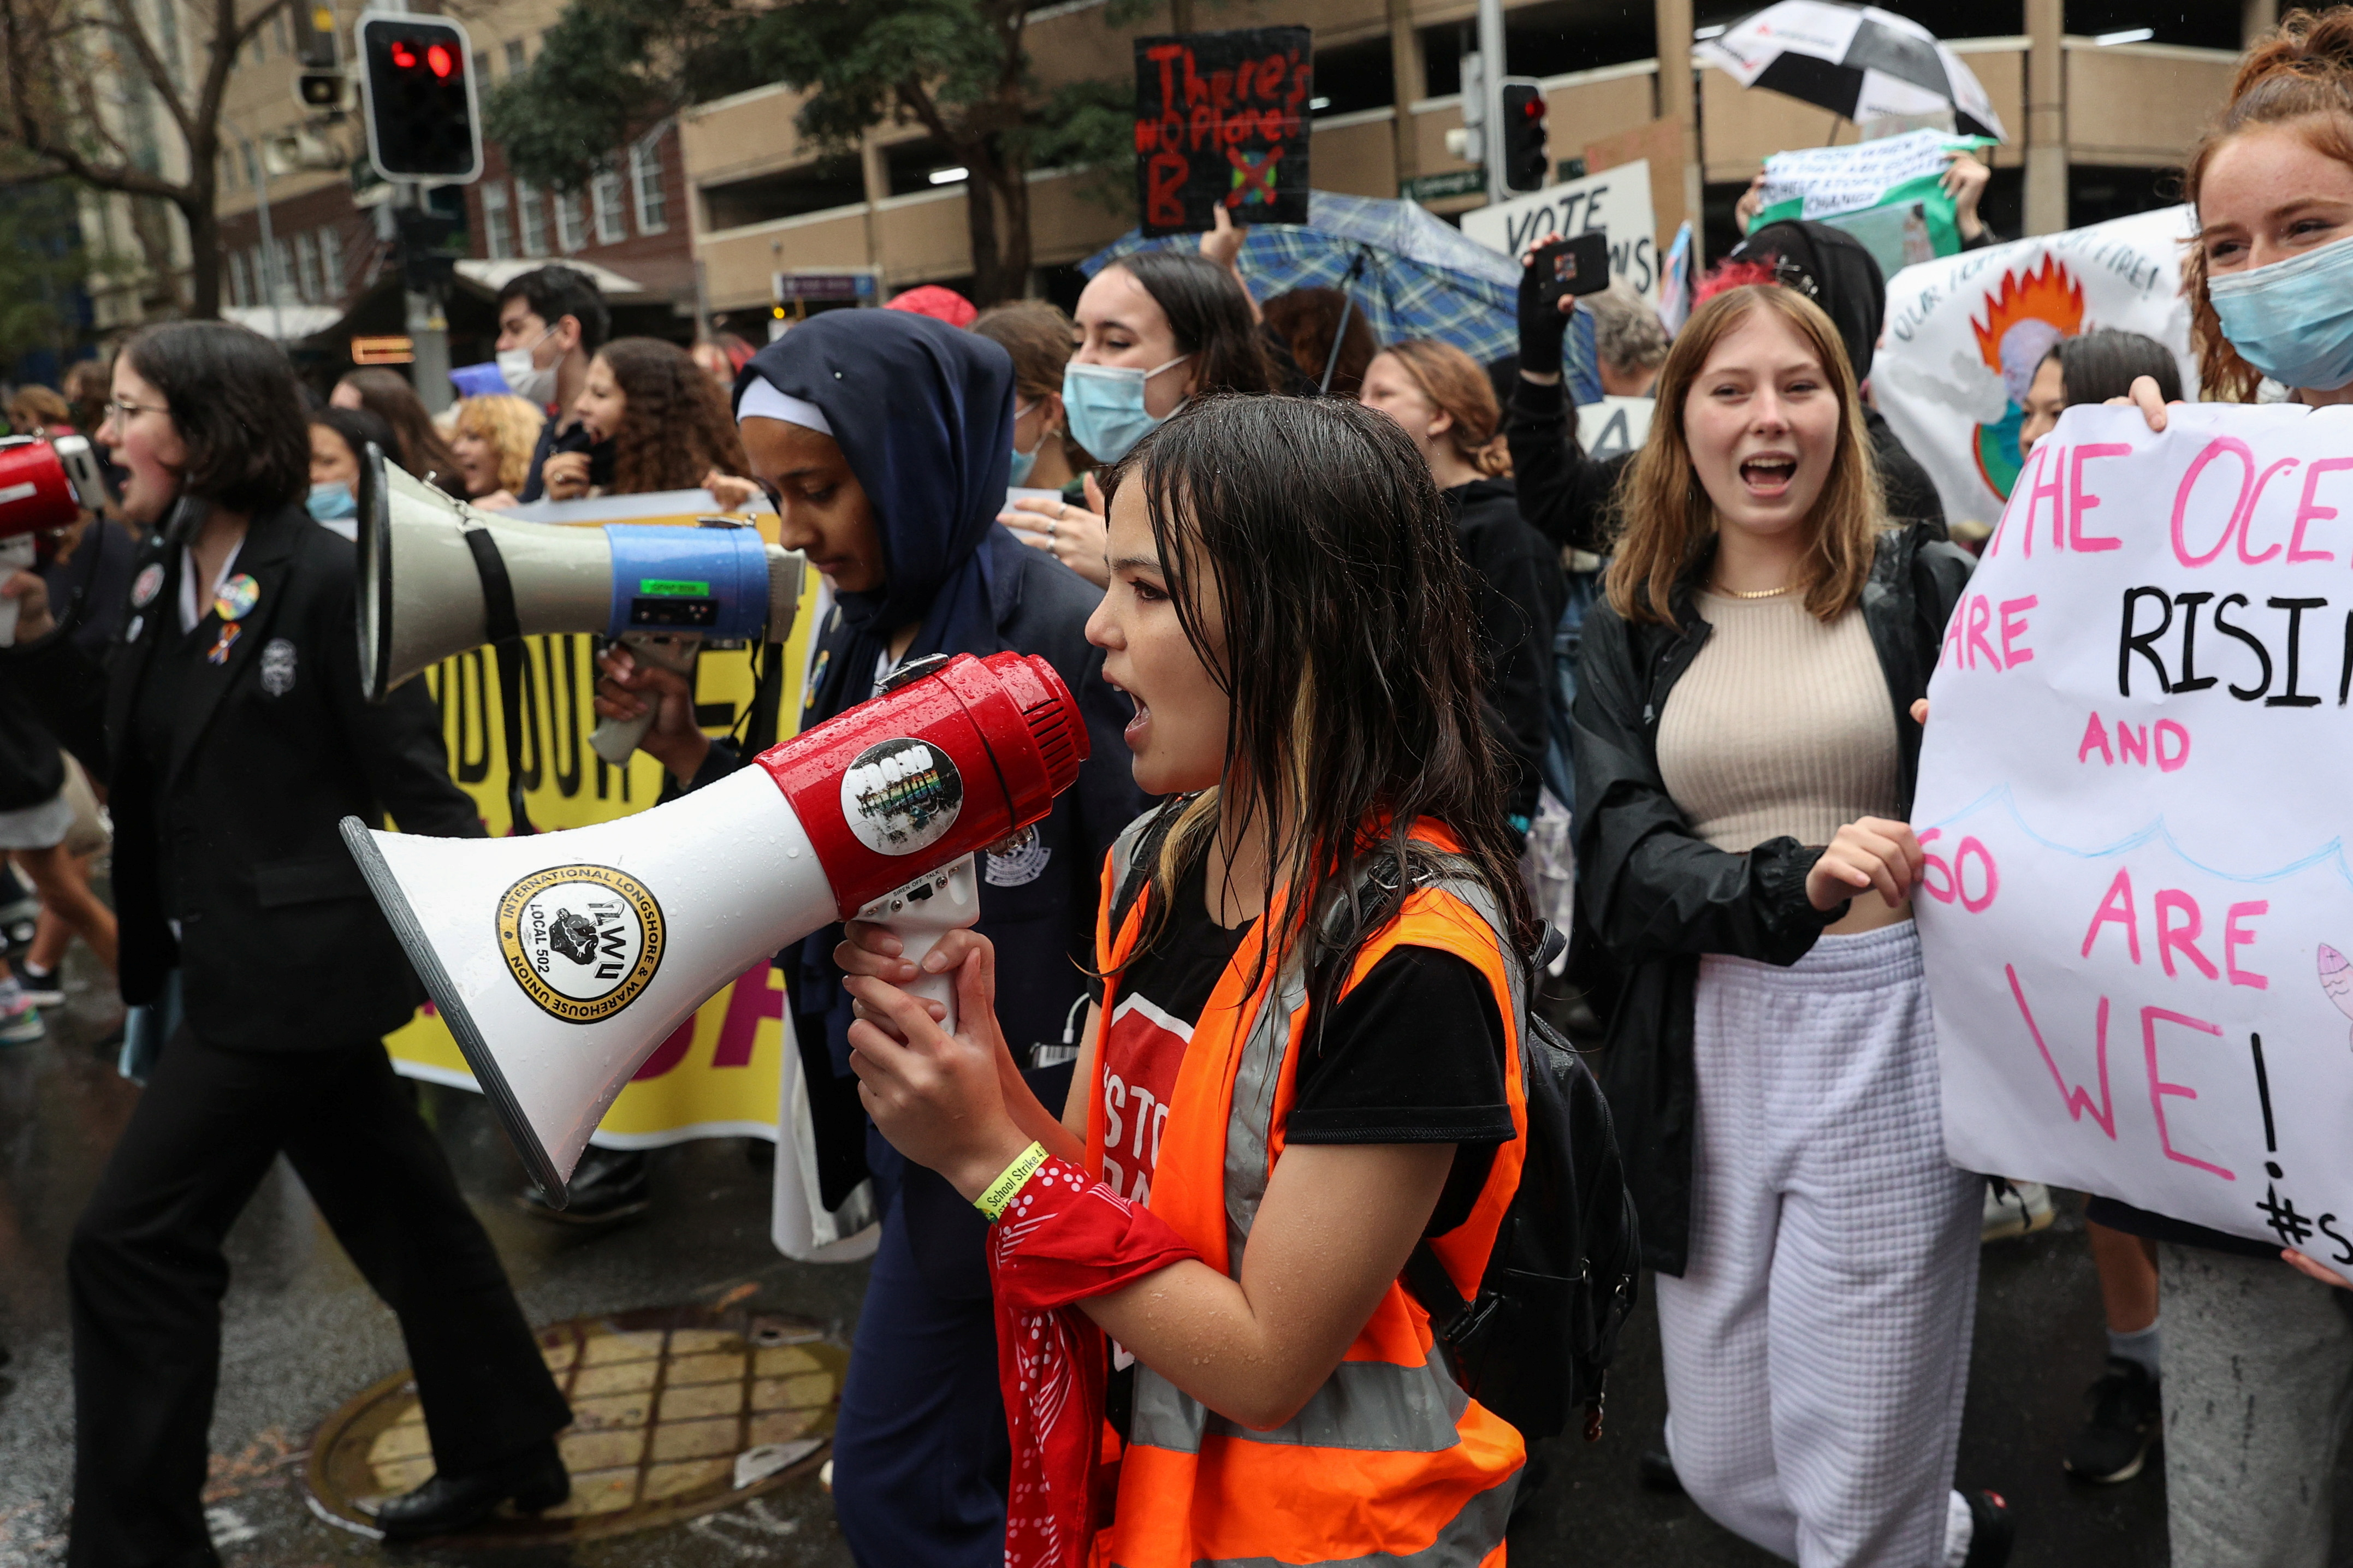 Izzy Raj-Seppings, a 14-year-old student and climate activist, leads a